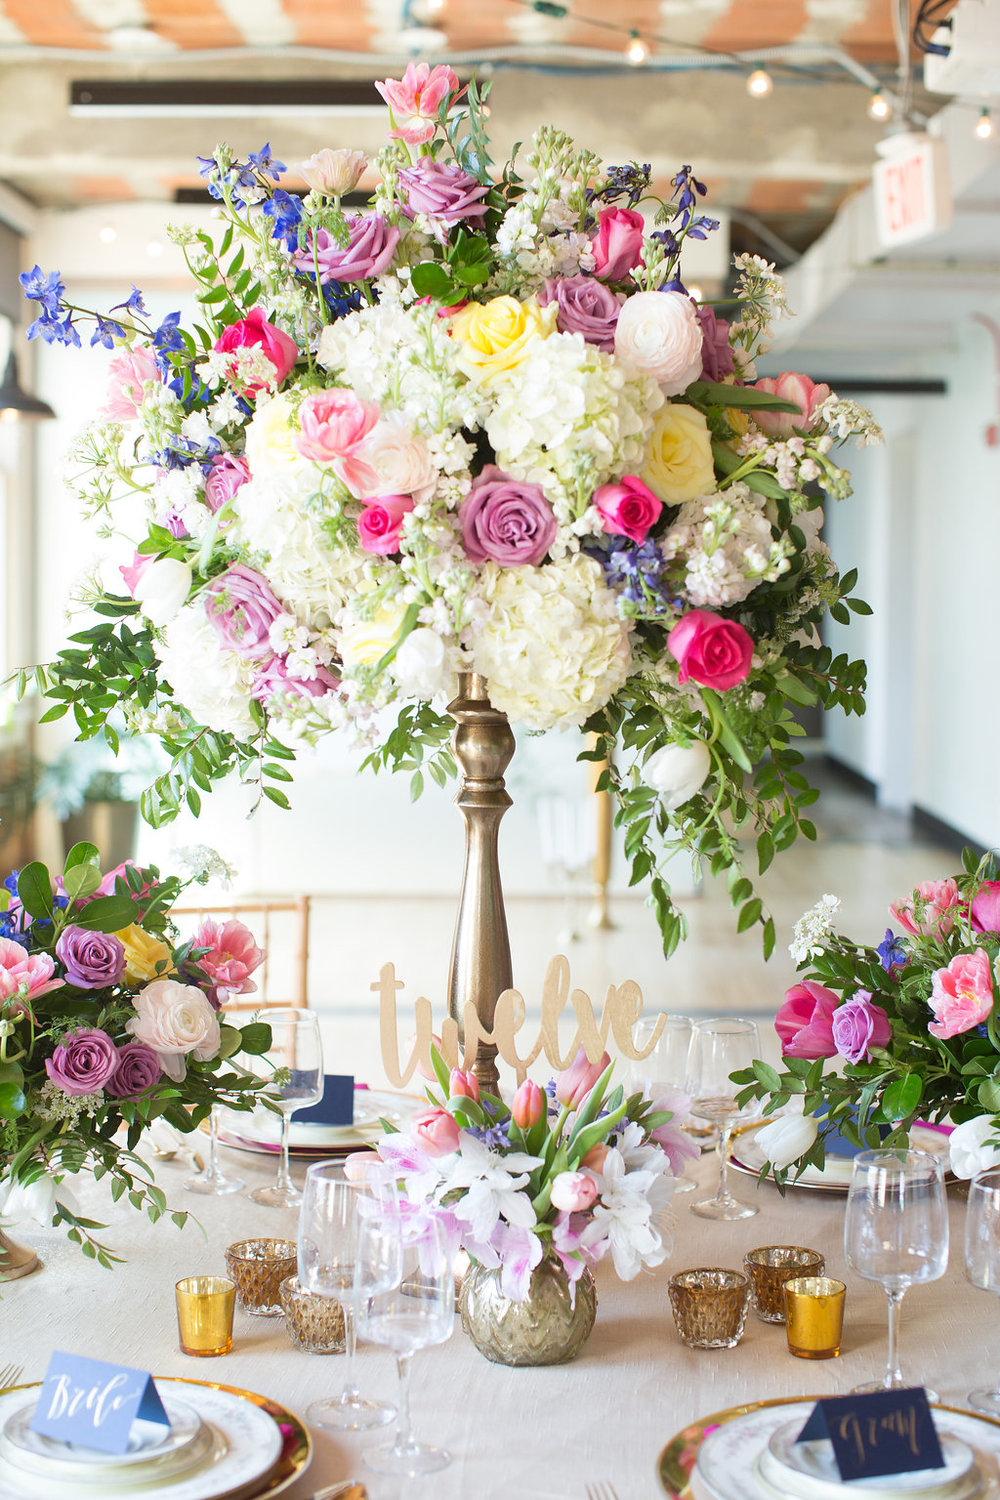 <b>Floral Designers</b>